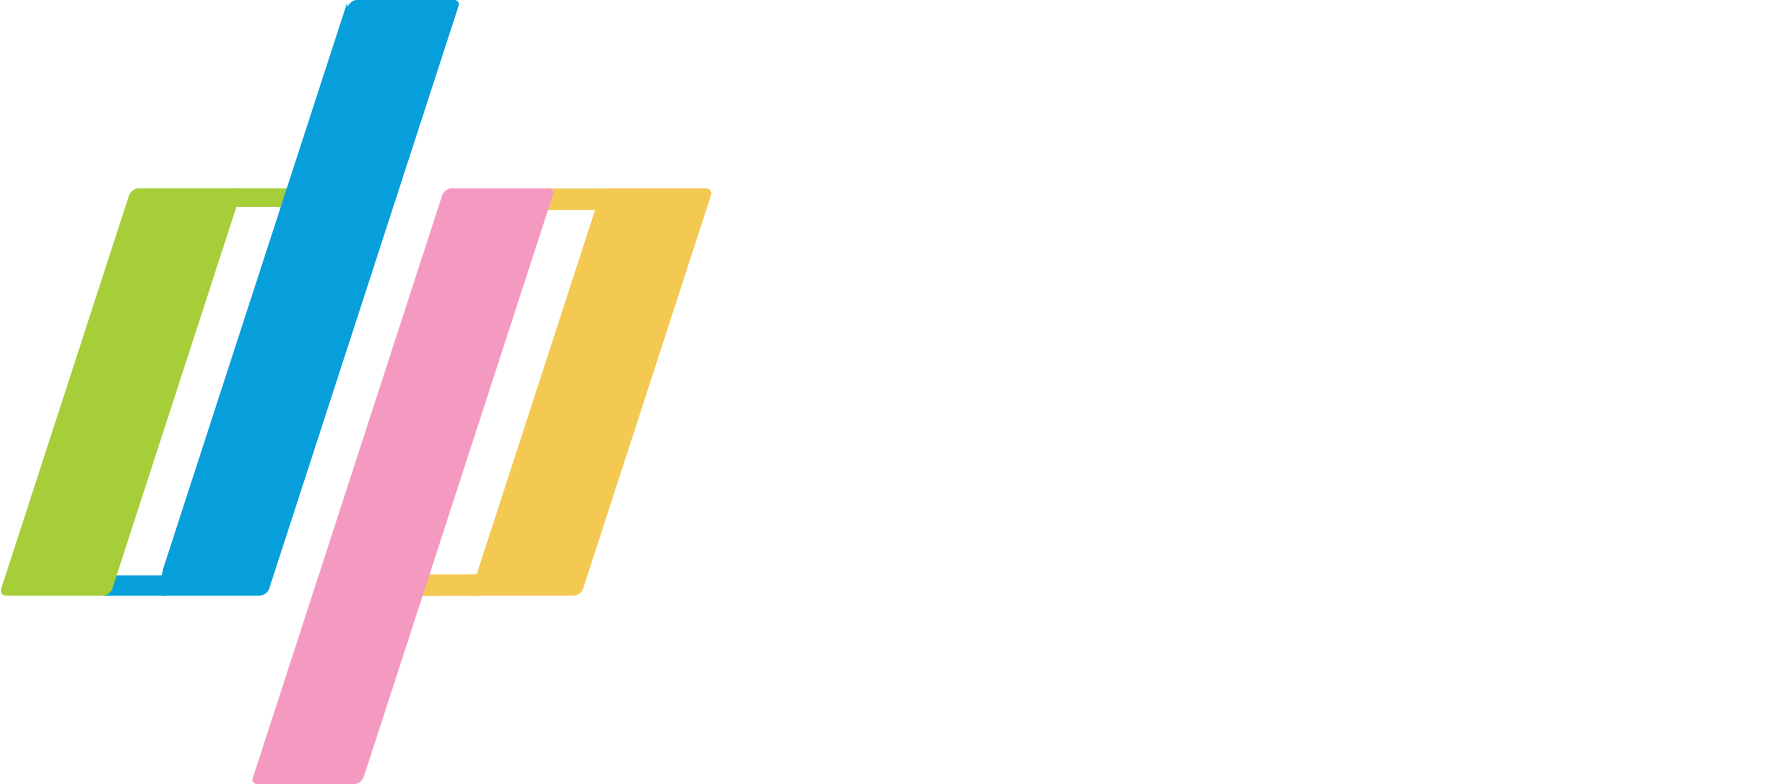 Digital Panich